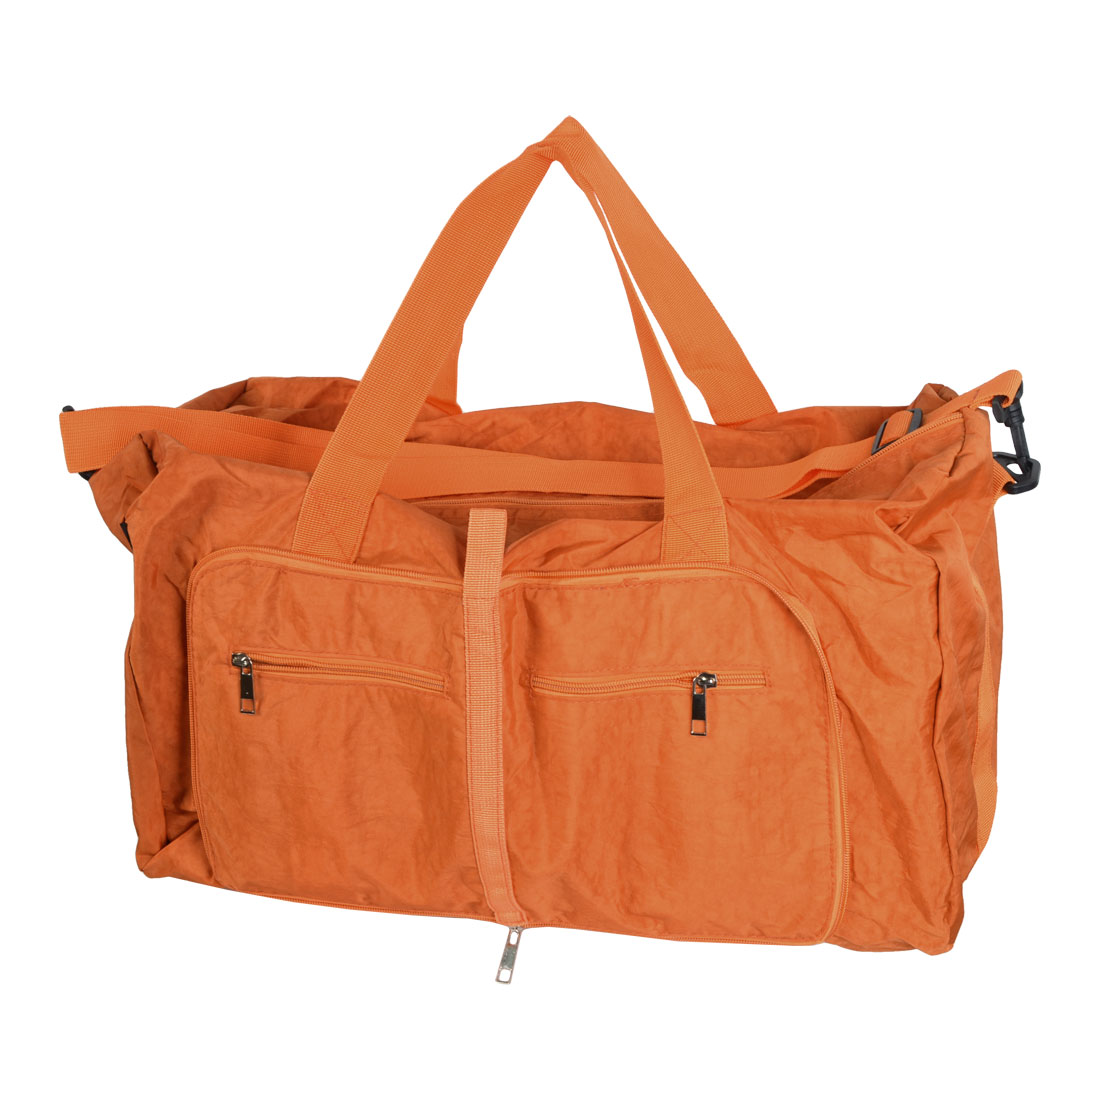 Traveling Household Foldable Pure Pattern Zipper Closure Clothes Storage Hand Bag Holder Pouch Orange 63x45 x13cm